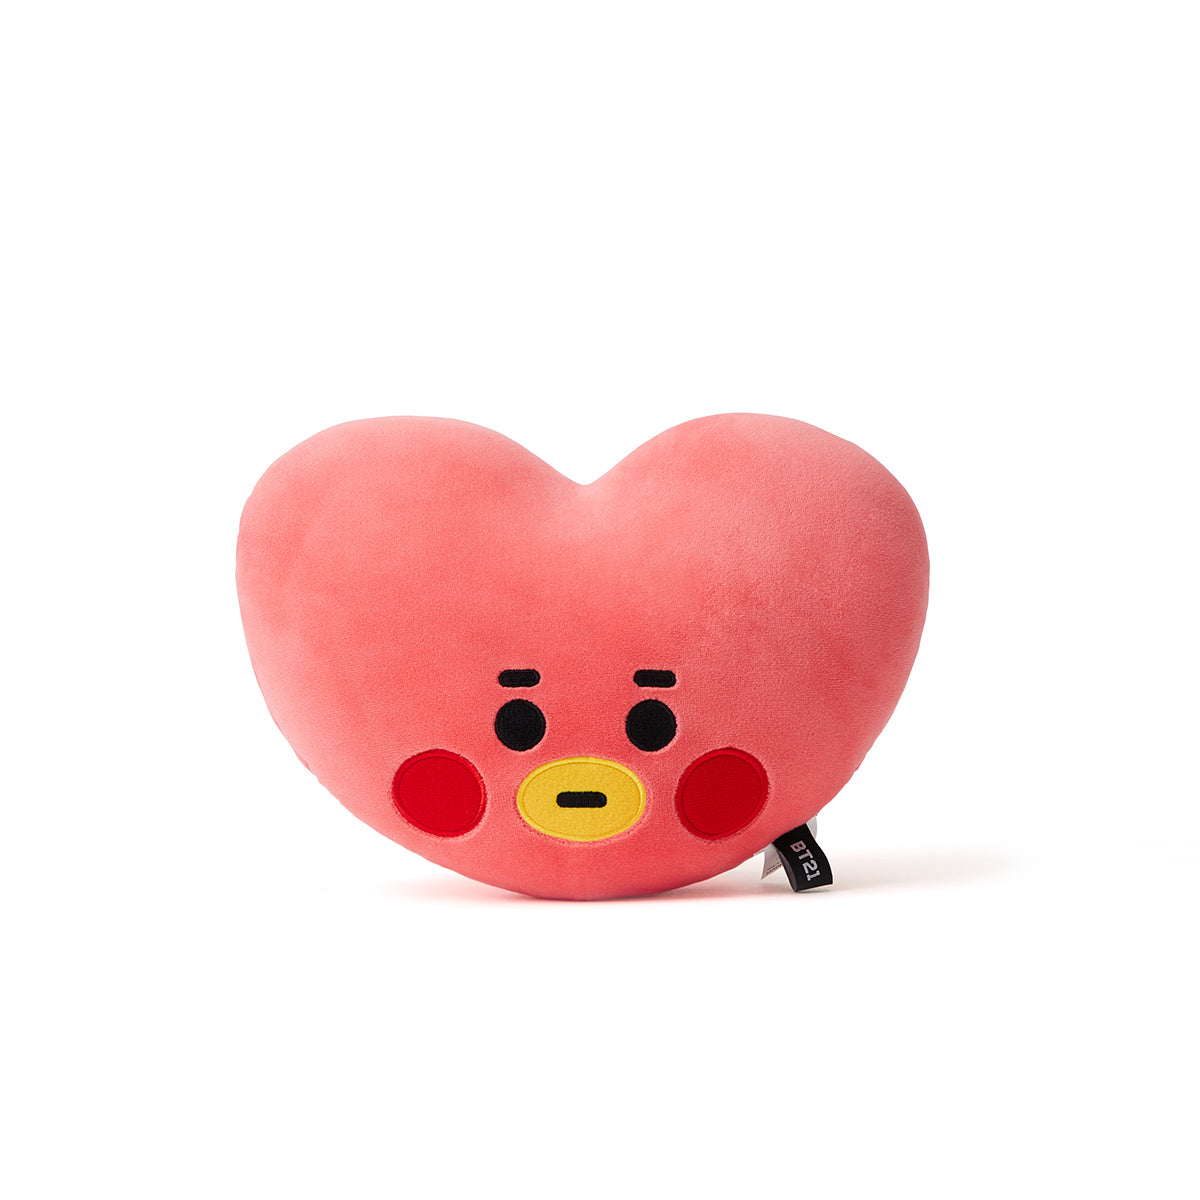 BT21 Baby TATA Flat Face Cushion